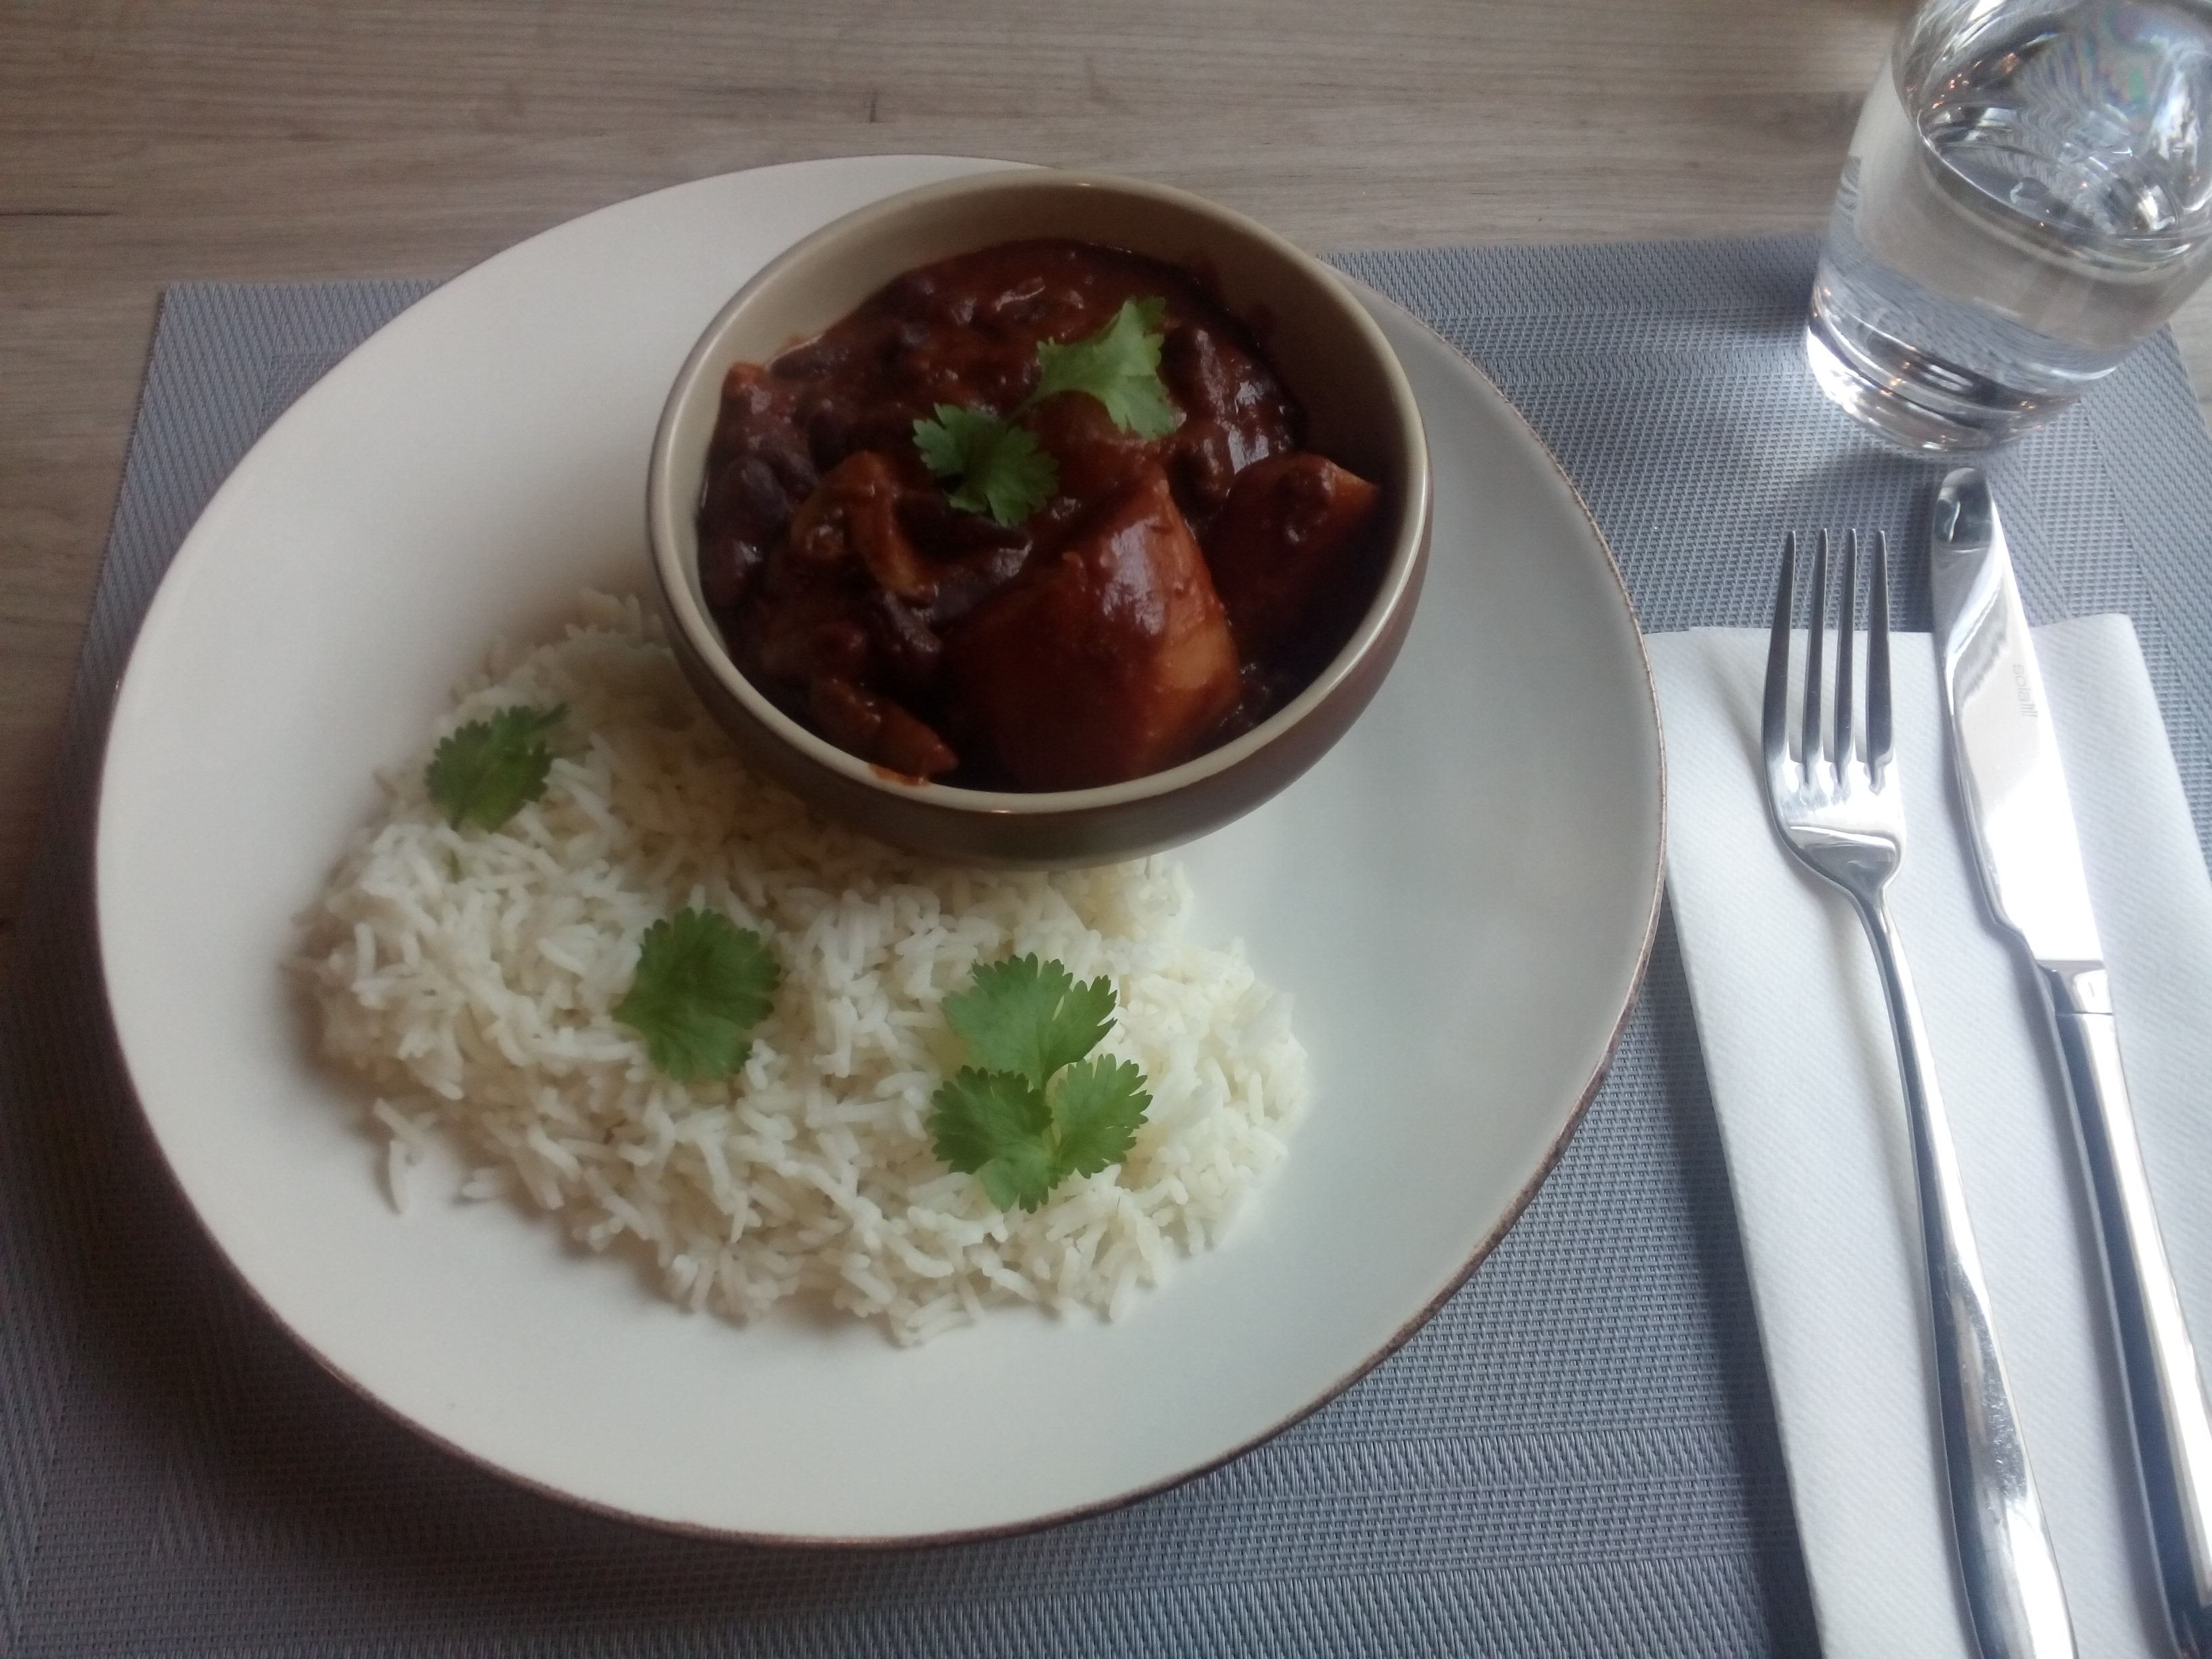 White plate with rice beside a pot of chilli, and a knife and fork and glass of water